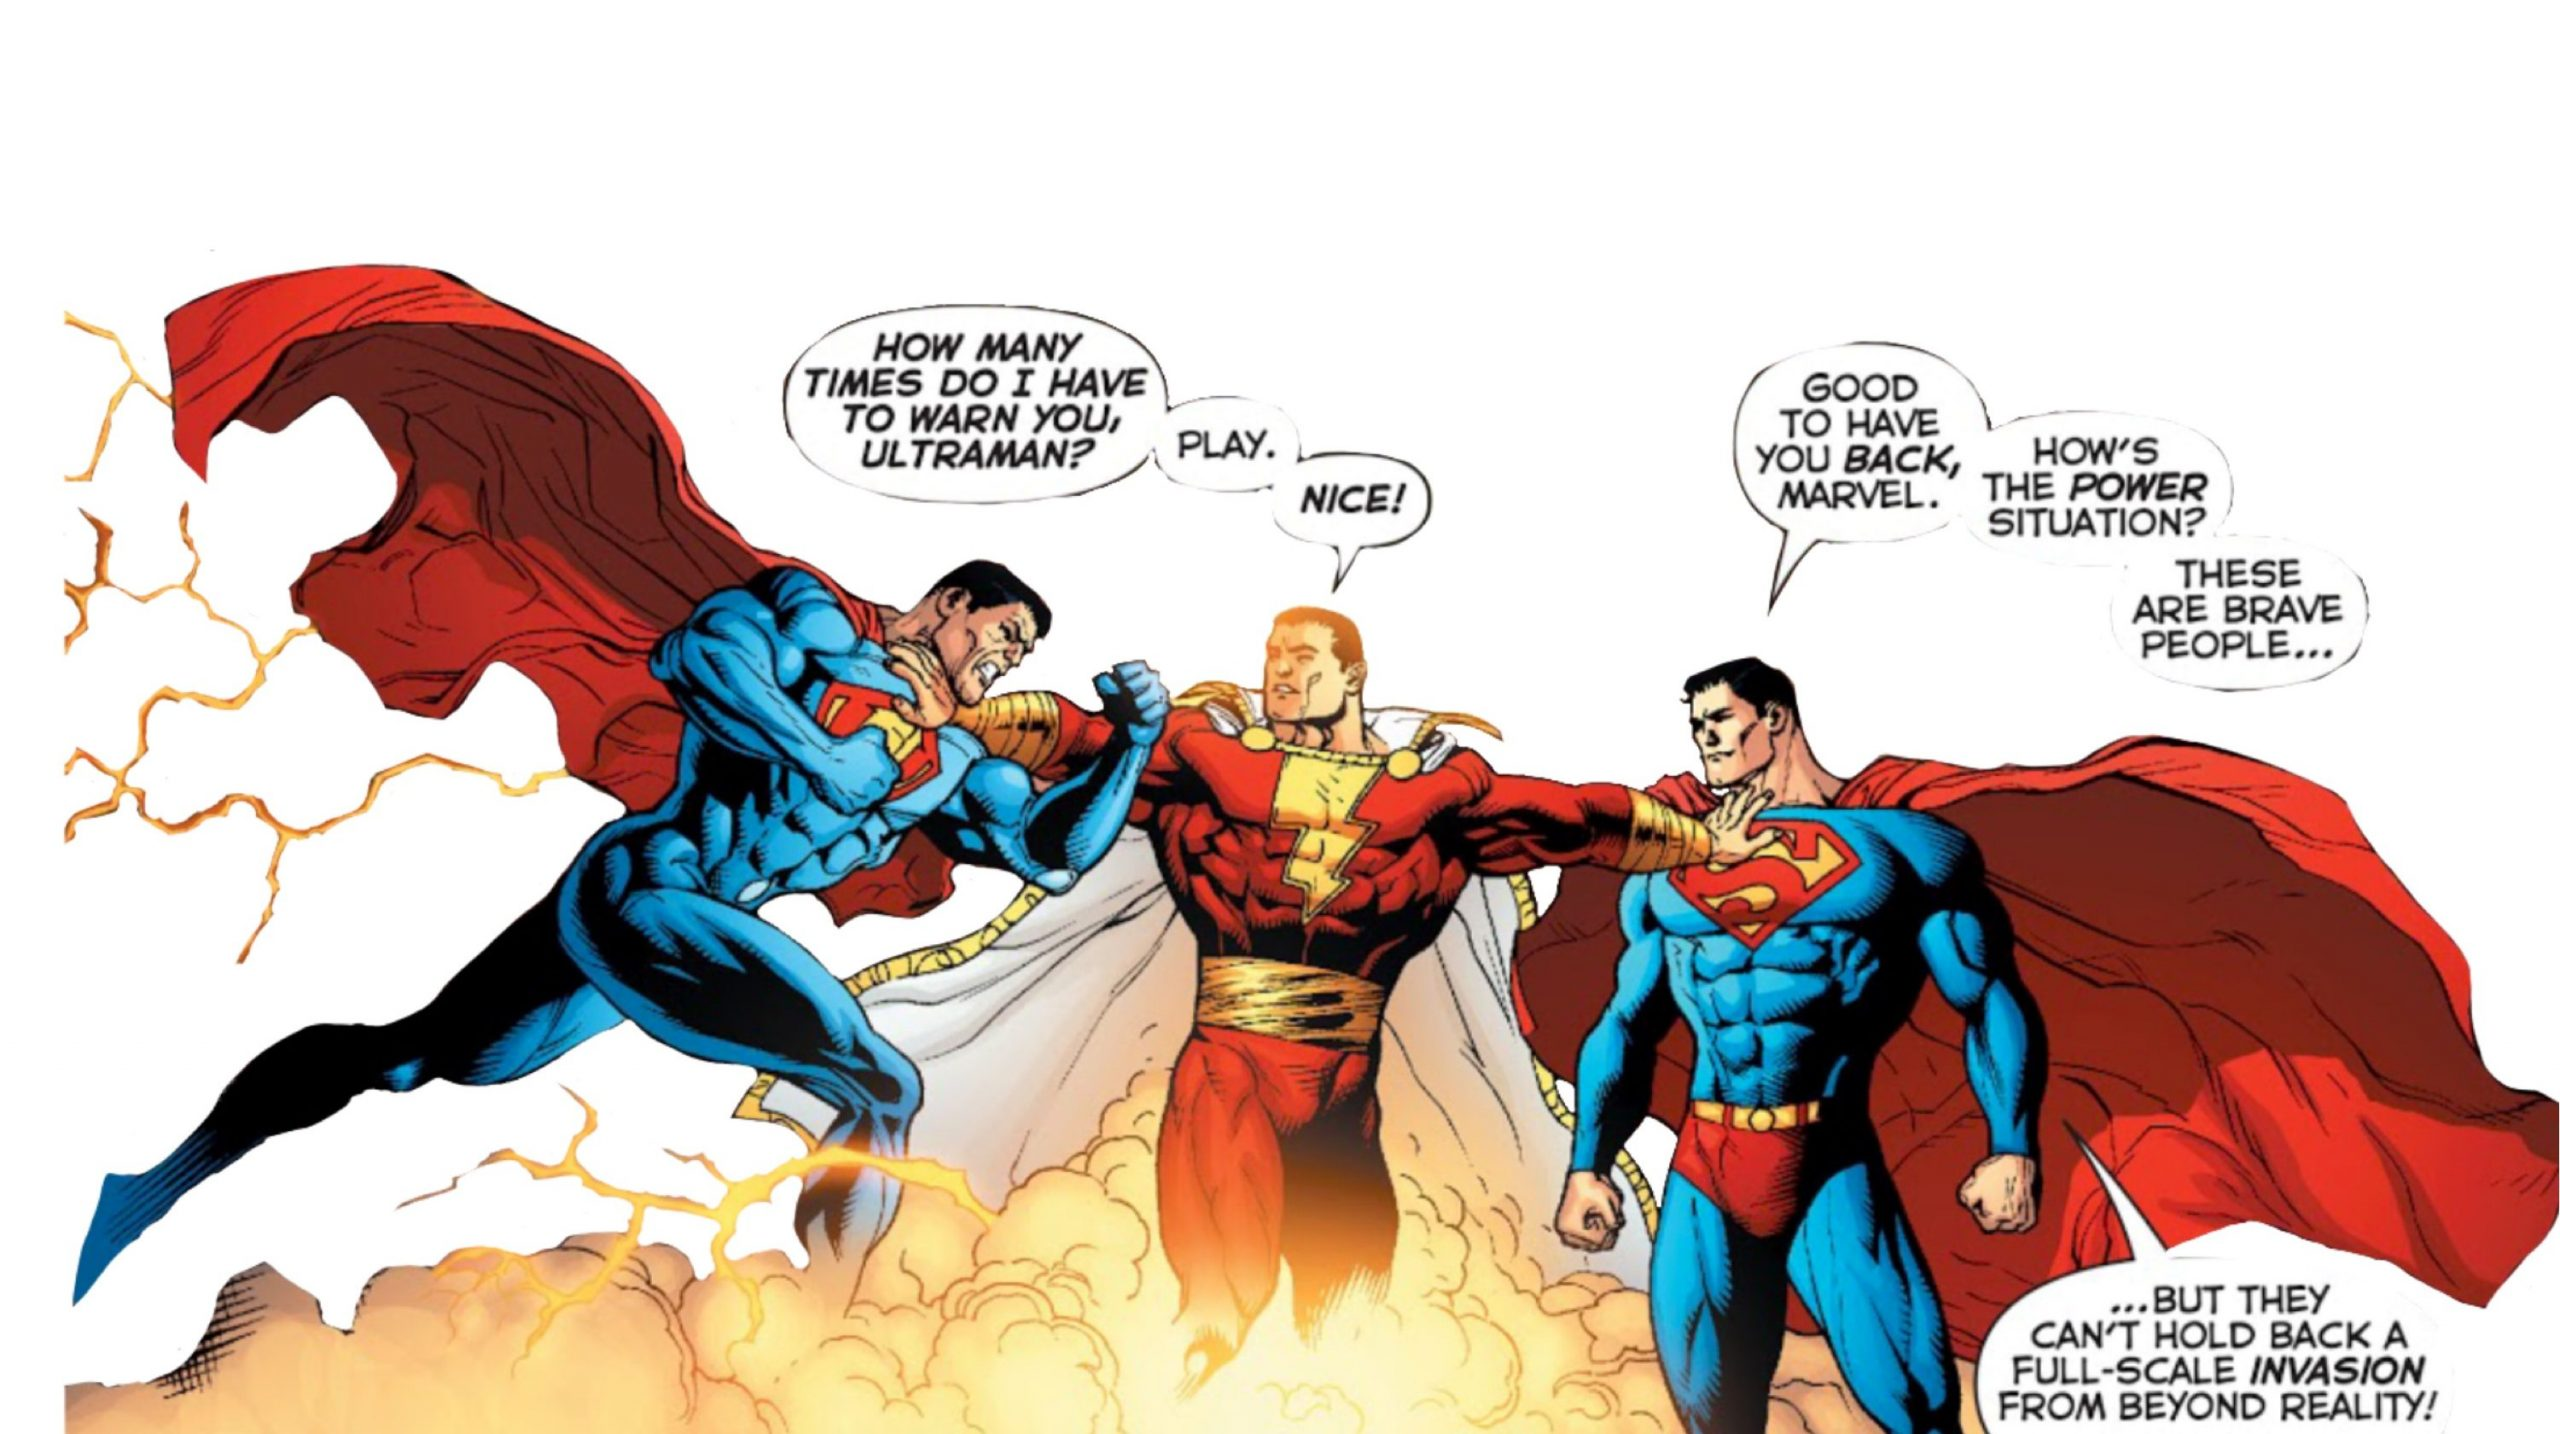 From left to right, Ultraman, Shazam and Superman